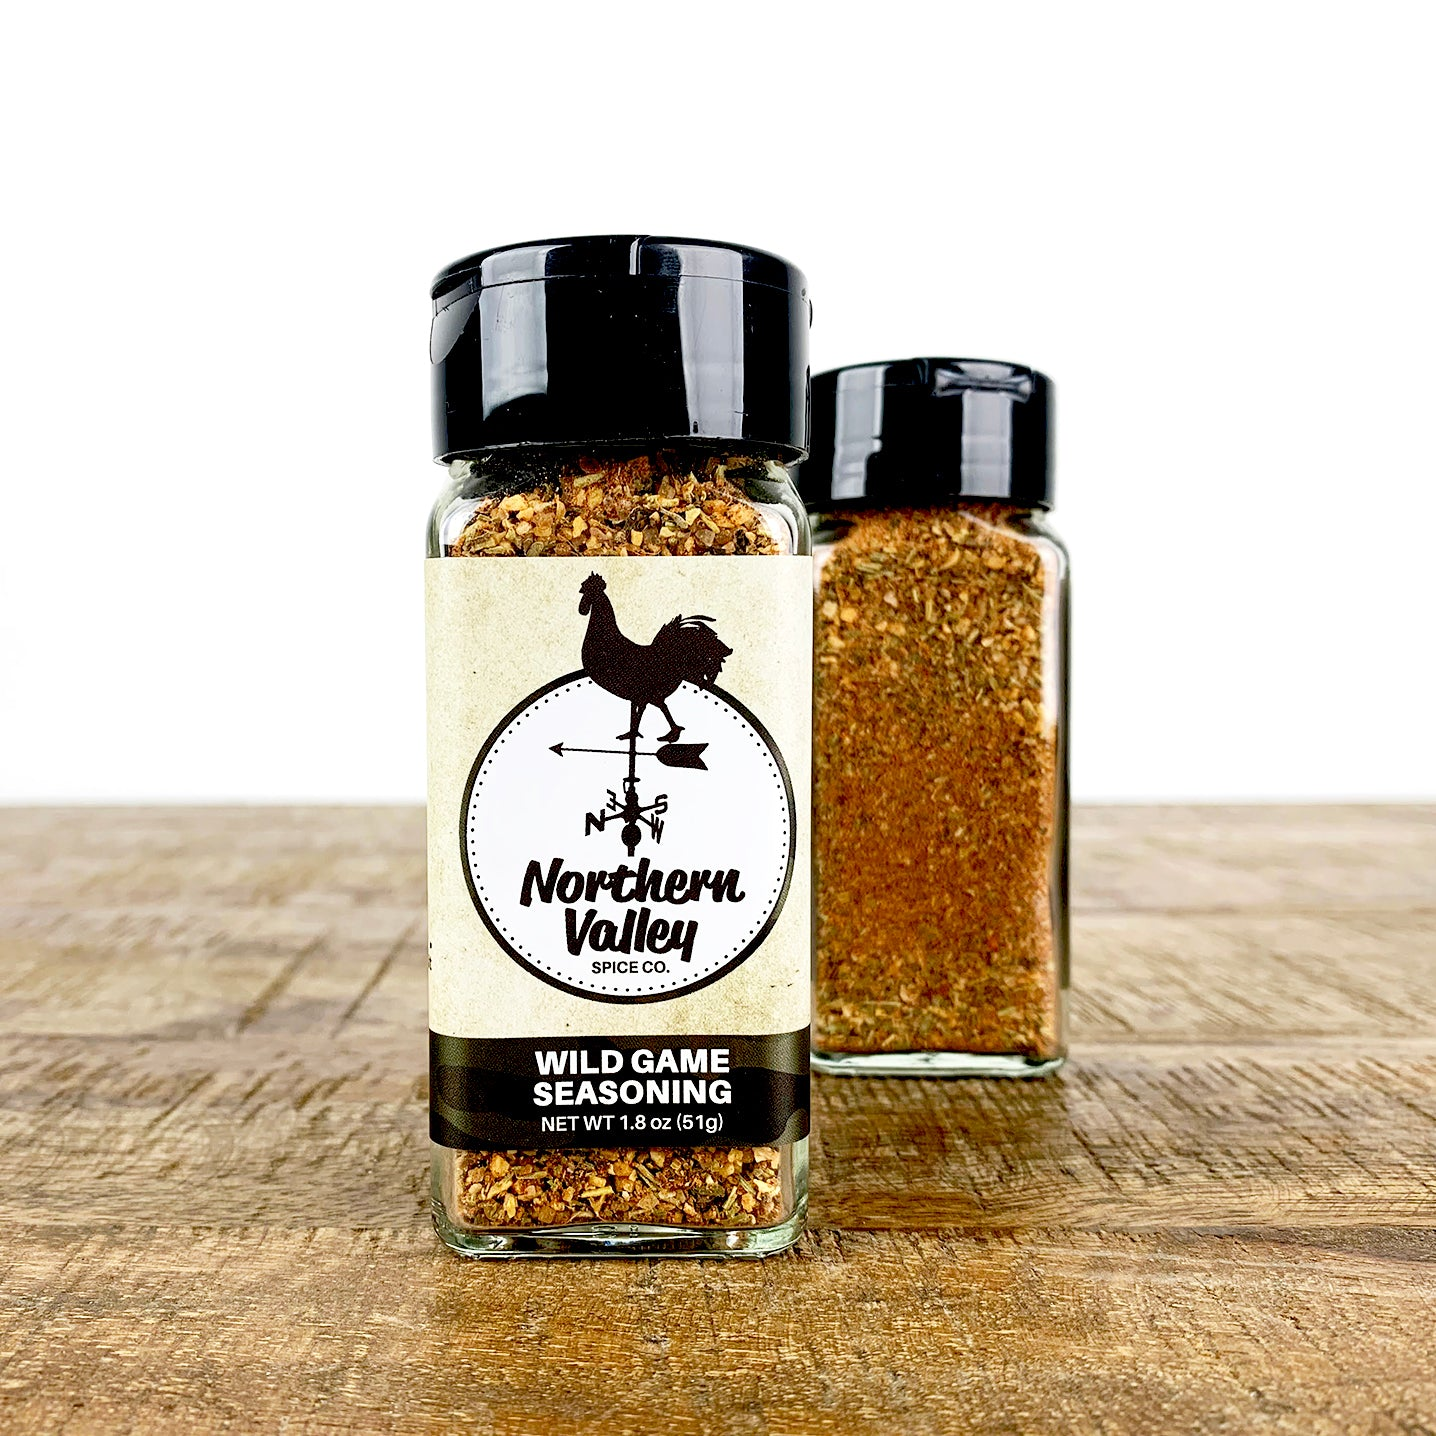 Wild Game Seasoning | Spices | Northern Valley Spice Co.